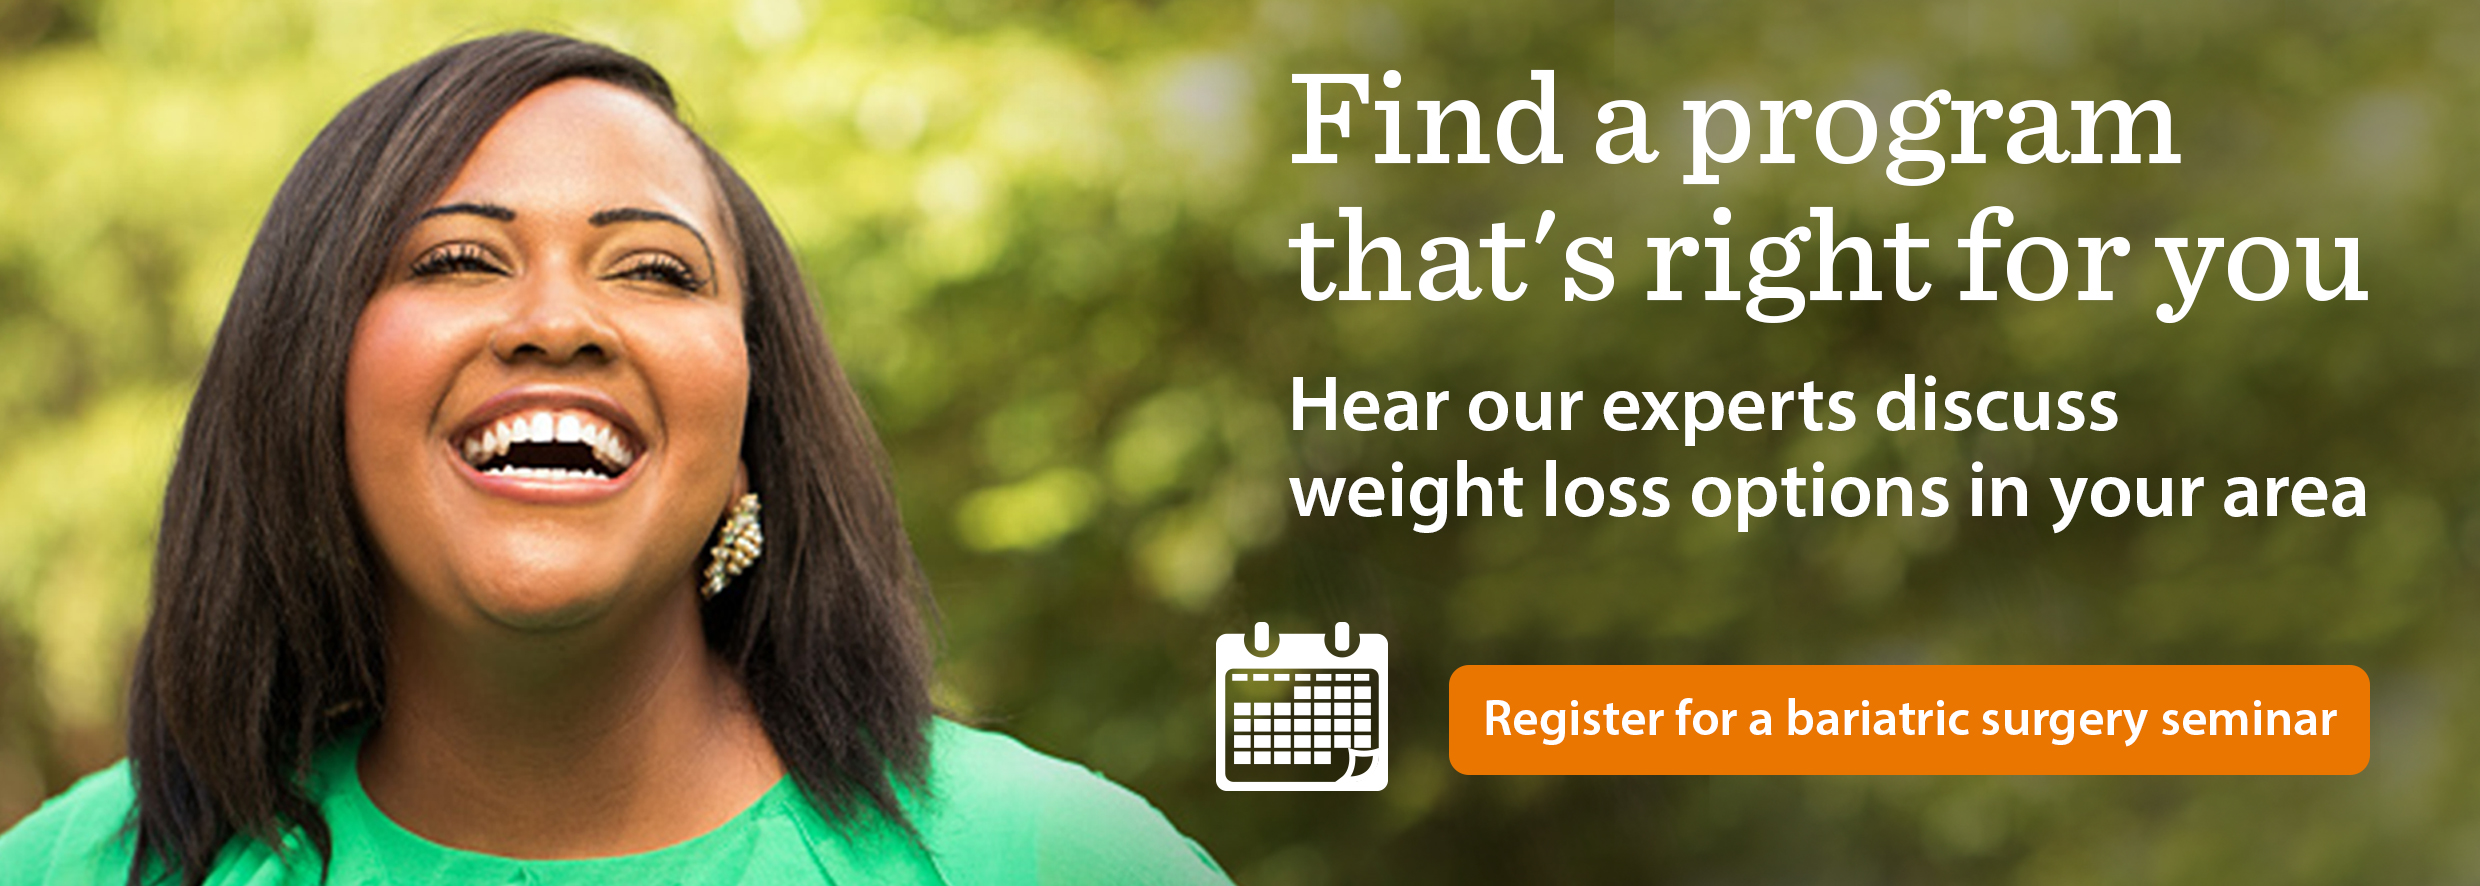 Register for a bariatric surgery seminar